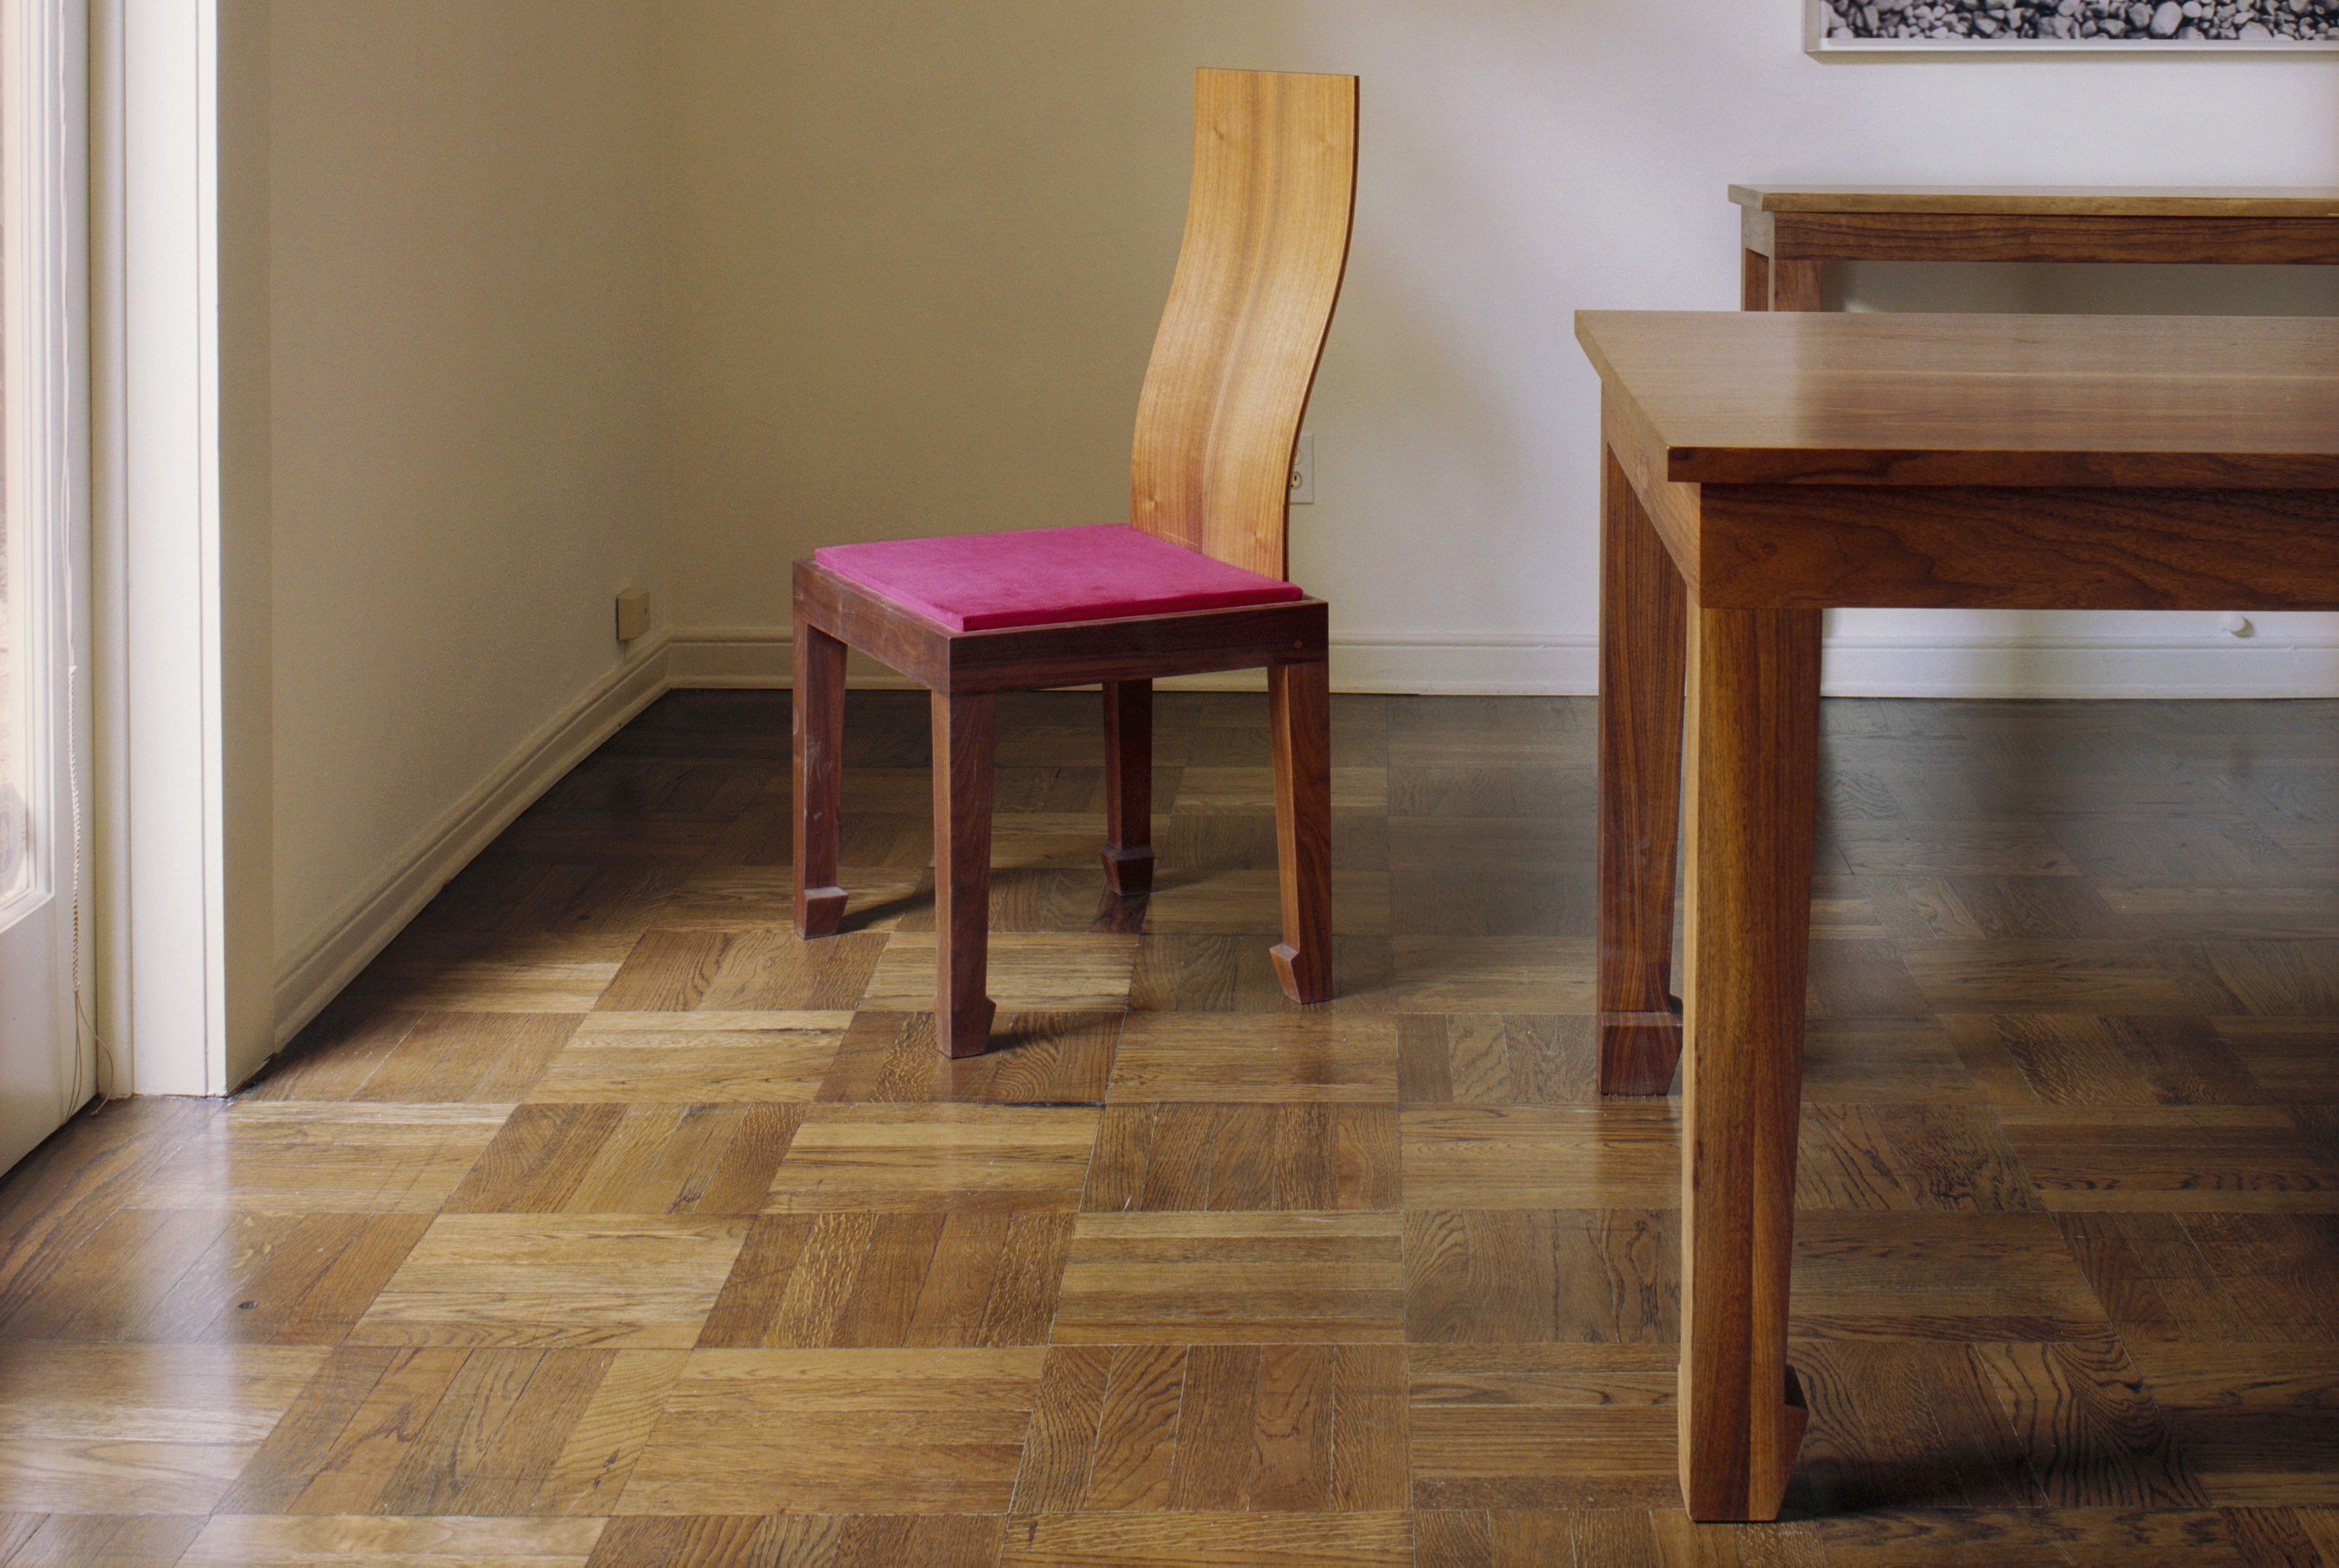 hardwood floor transition pieces of wood parquet flooring poised for a resurgence in wood parquet flooring 529502452 576c78195f9b585875a1ac13